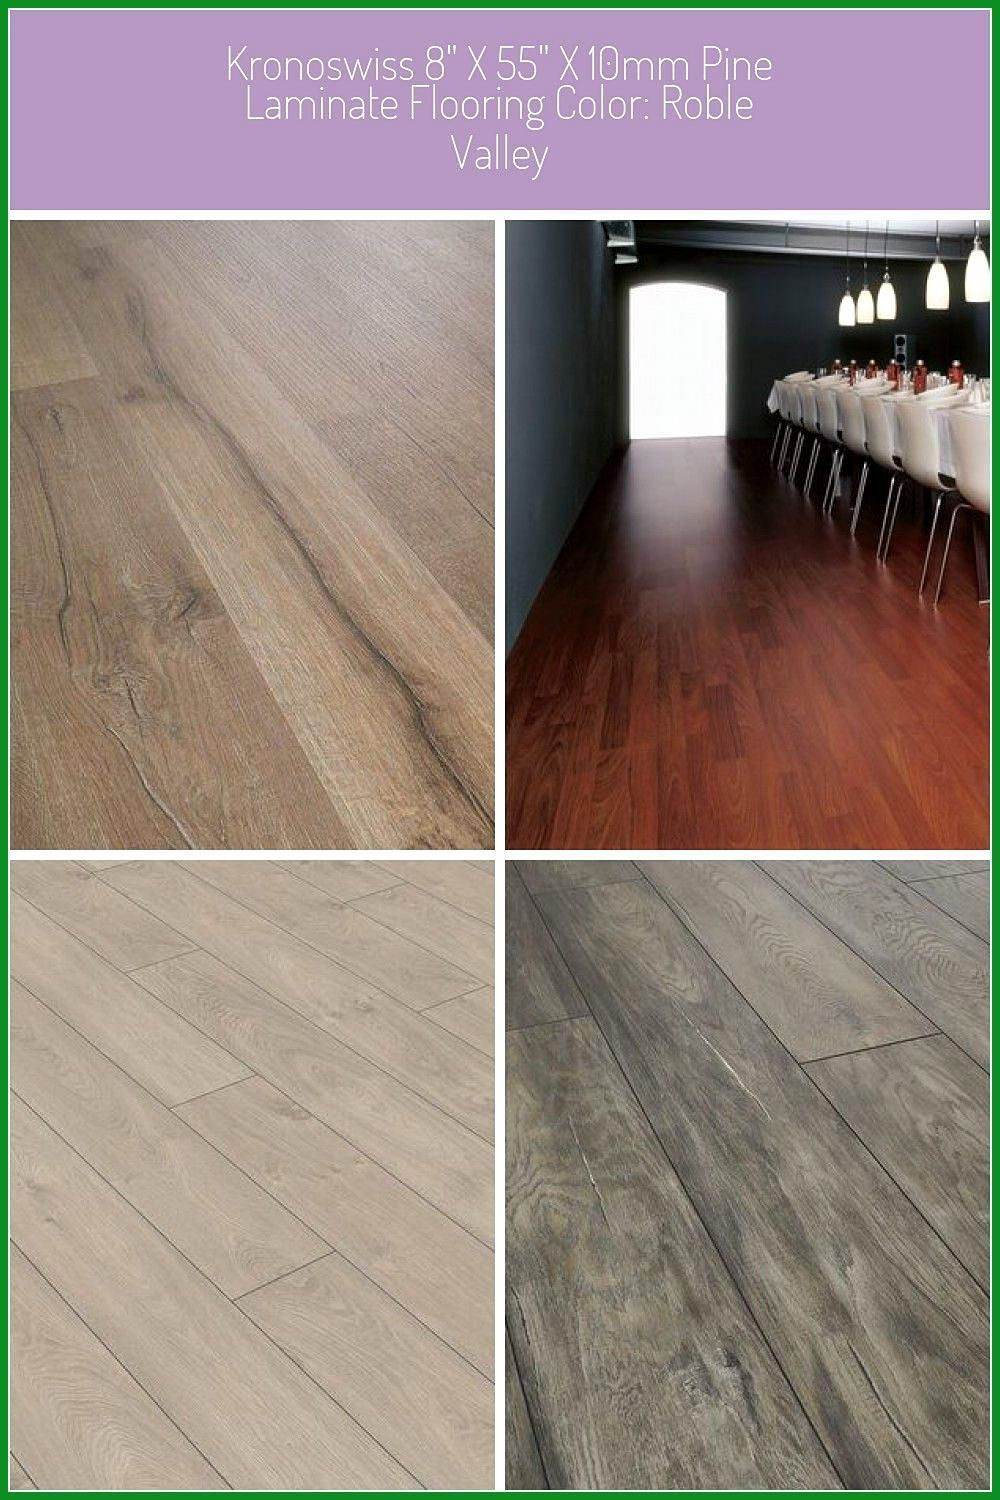 Kronoswiss 8 8243 X 55 8243 X 10mm Pine Laminate Flooring Color Roble Valley Lam 10mm Color Floorin In 2020 Laminate Flooring Oak Laminate Flooring Oak Laminate